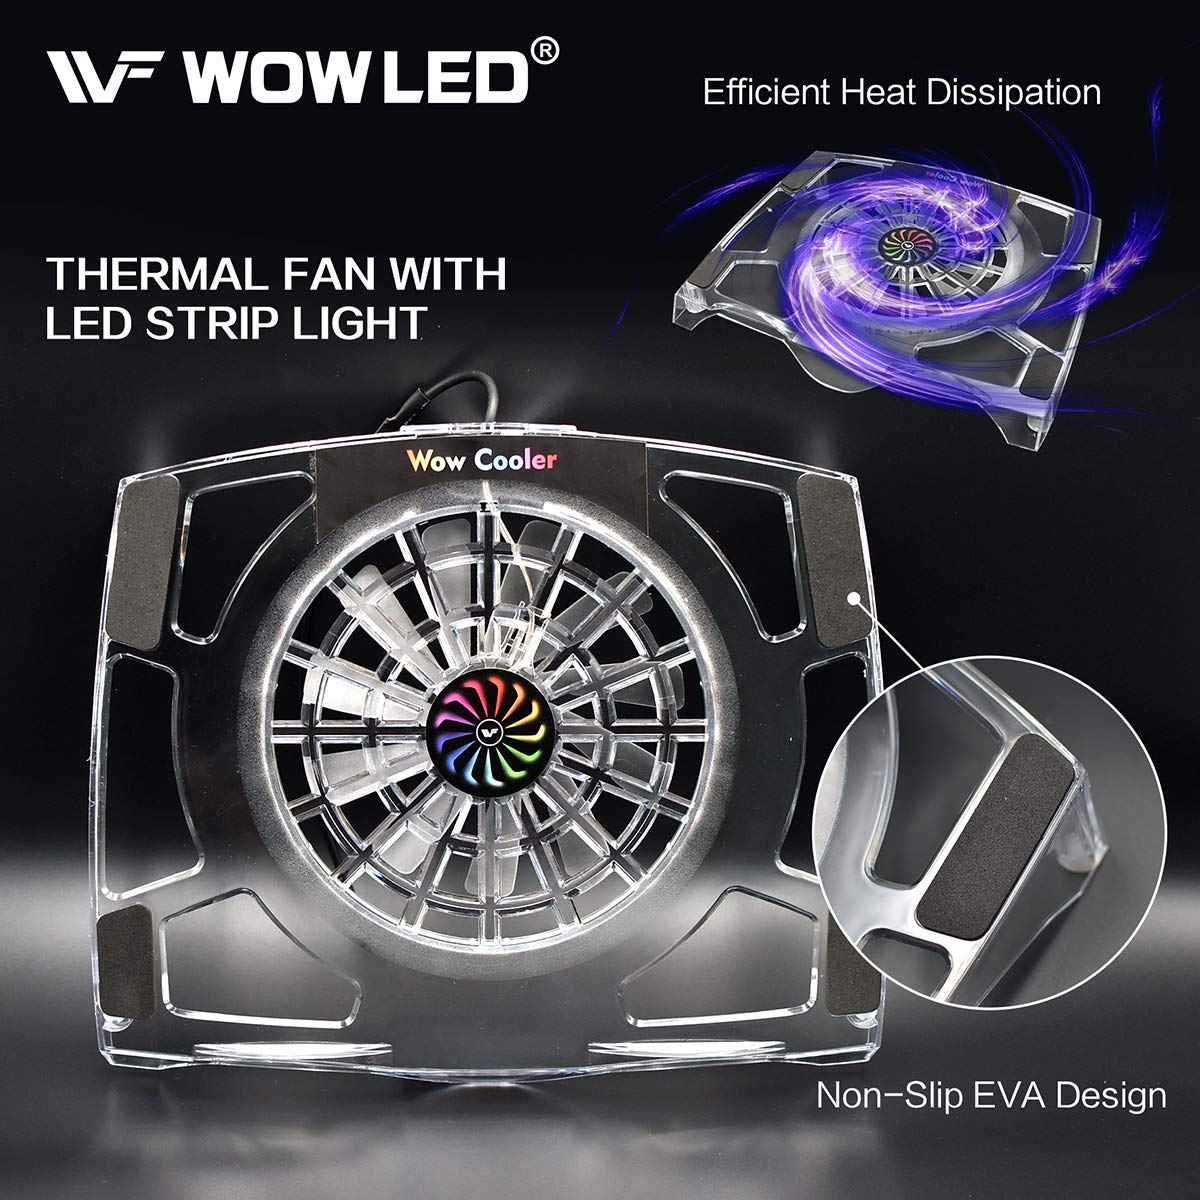 WOWLED Upgrade Sturdy LED Cooling Cooler Fan 3-Key Mini Controller PS4 Accessories Pro Cooling Fan, Xbox One X 360 Playstation 4 Sony Game Console PC, All-in-One USB RGB LED Fan Pad Stand Coolers by WOWLED (Image #6)